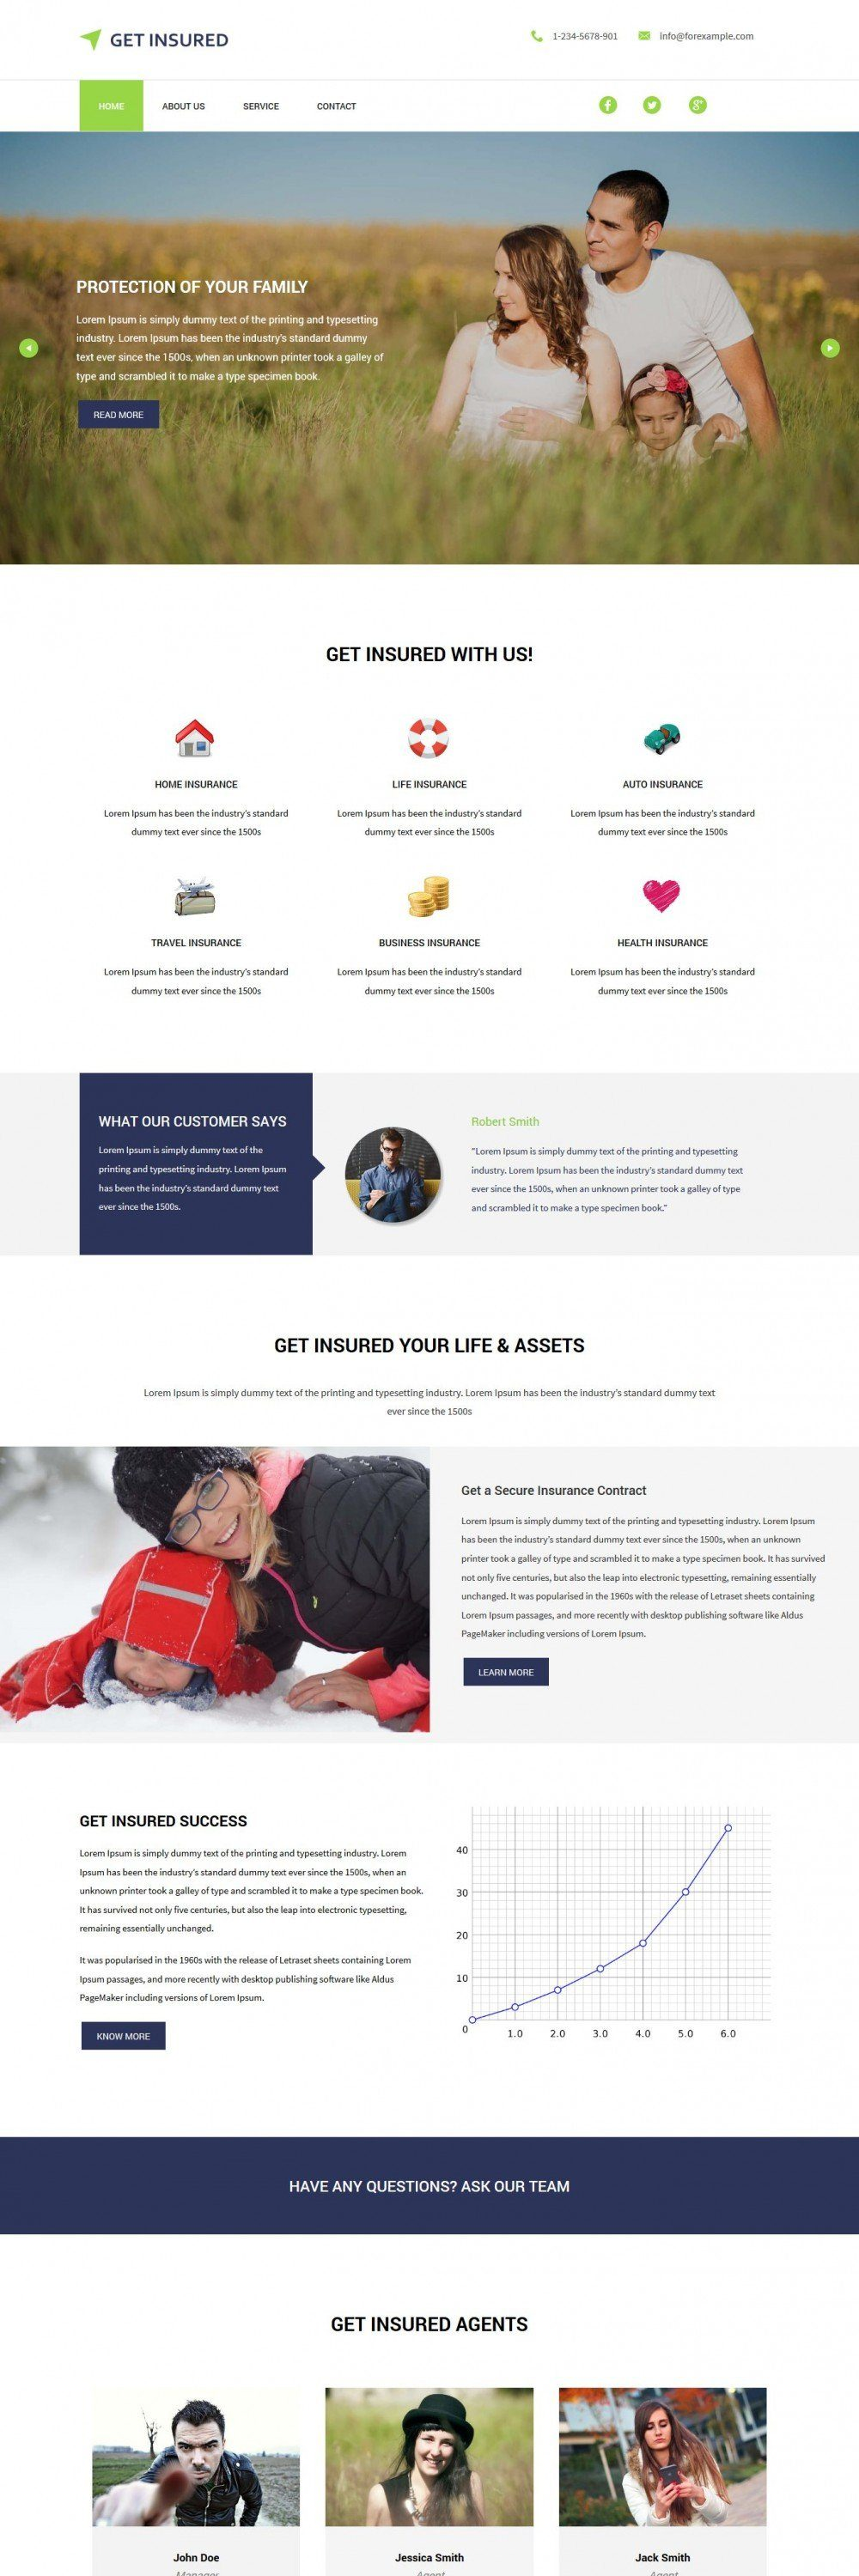 Get Insured - Business and Insurance Company WordPress Theme